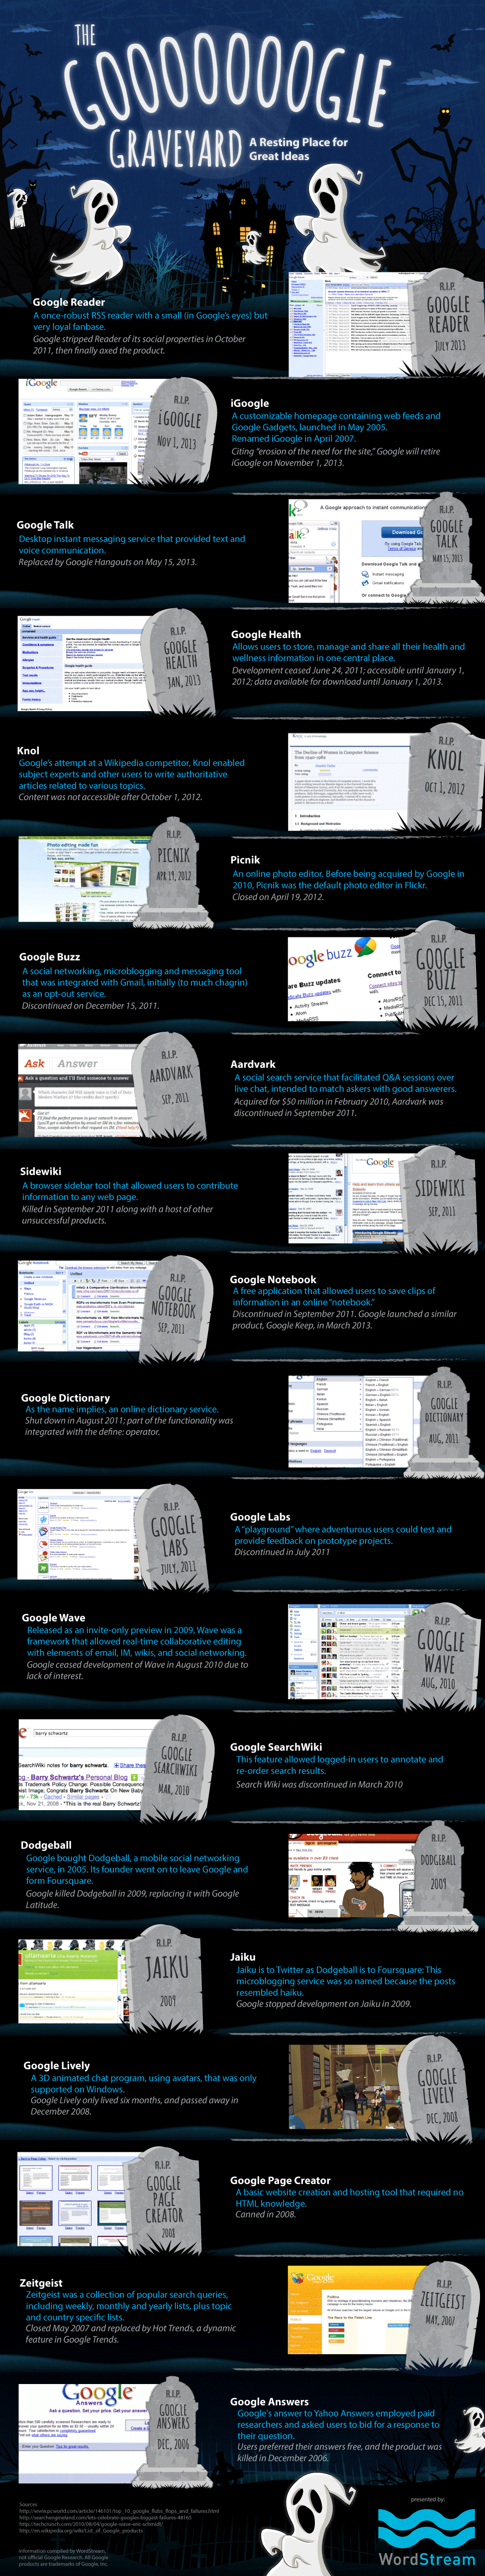 the-google-ideas-graveyard-infographic